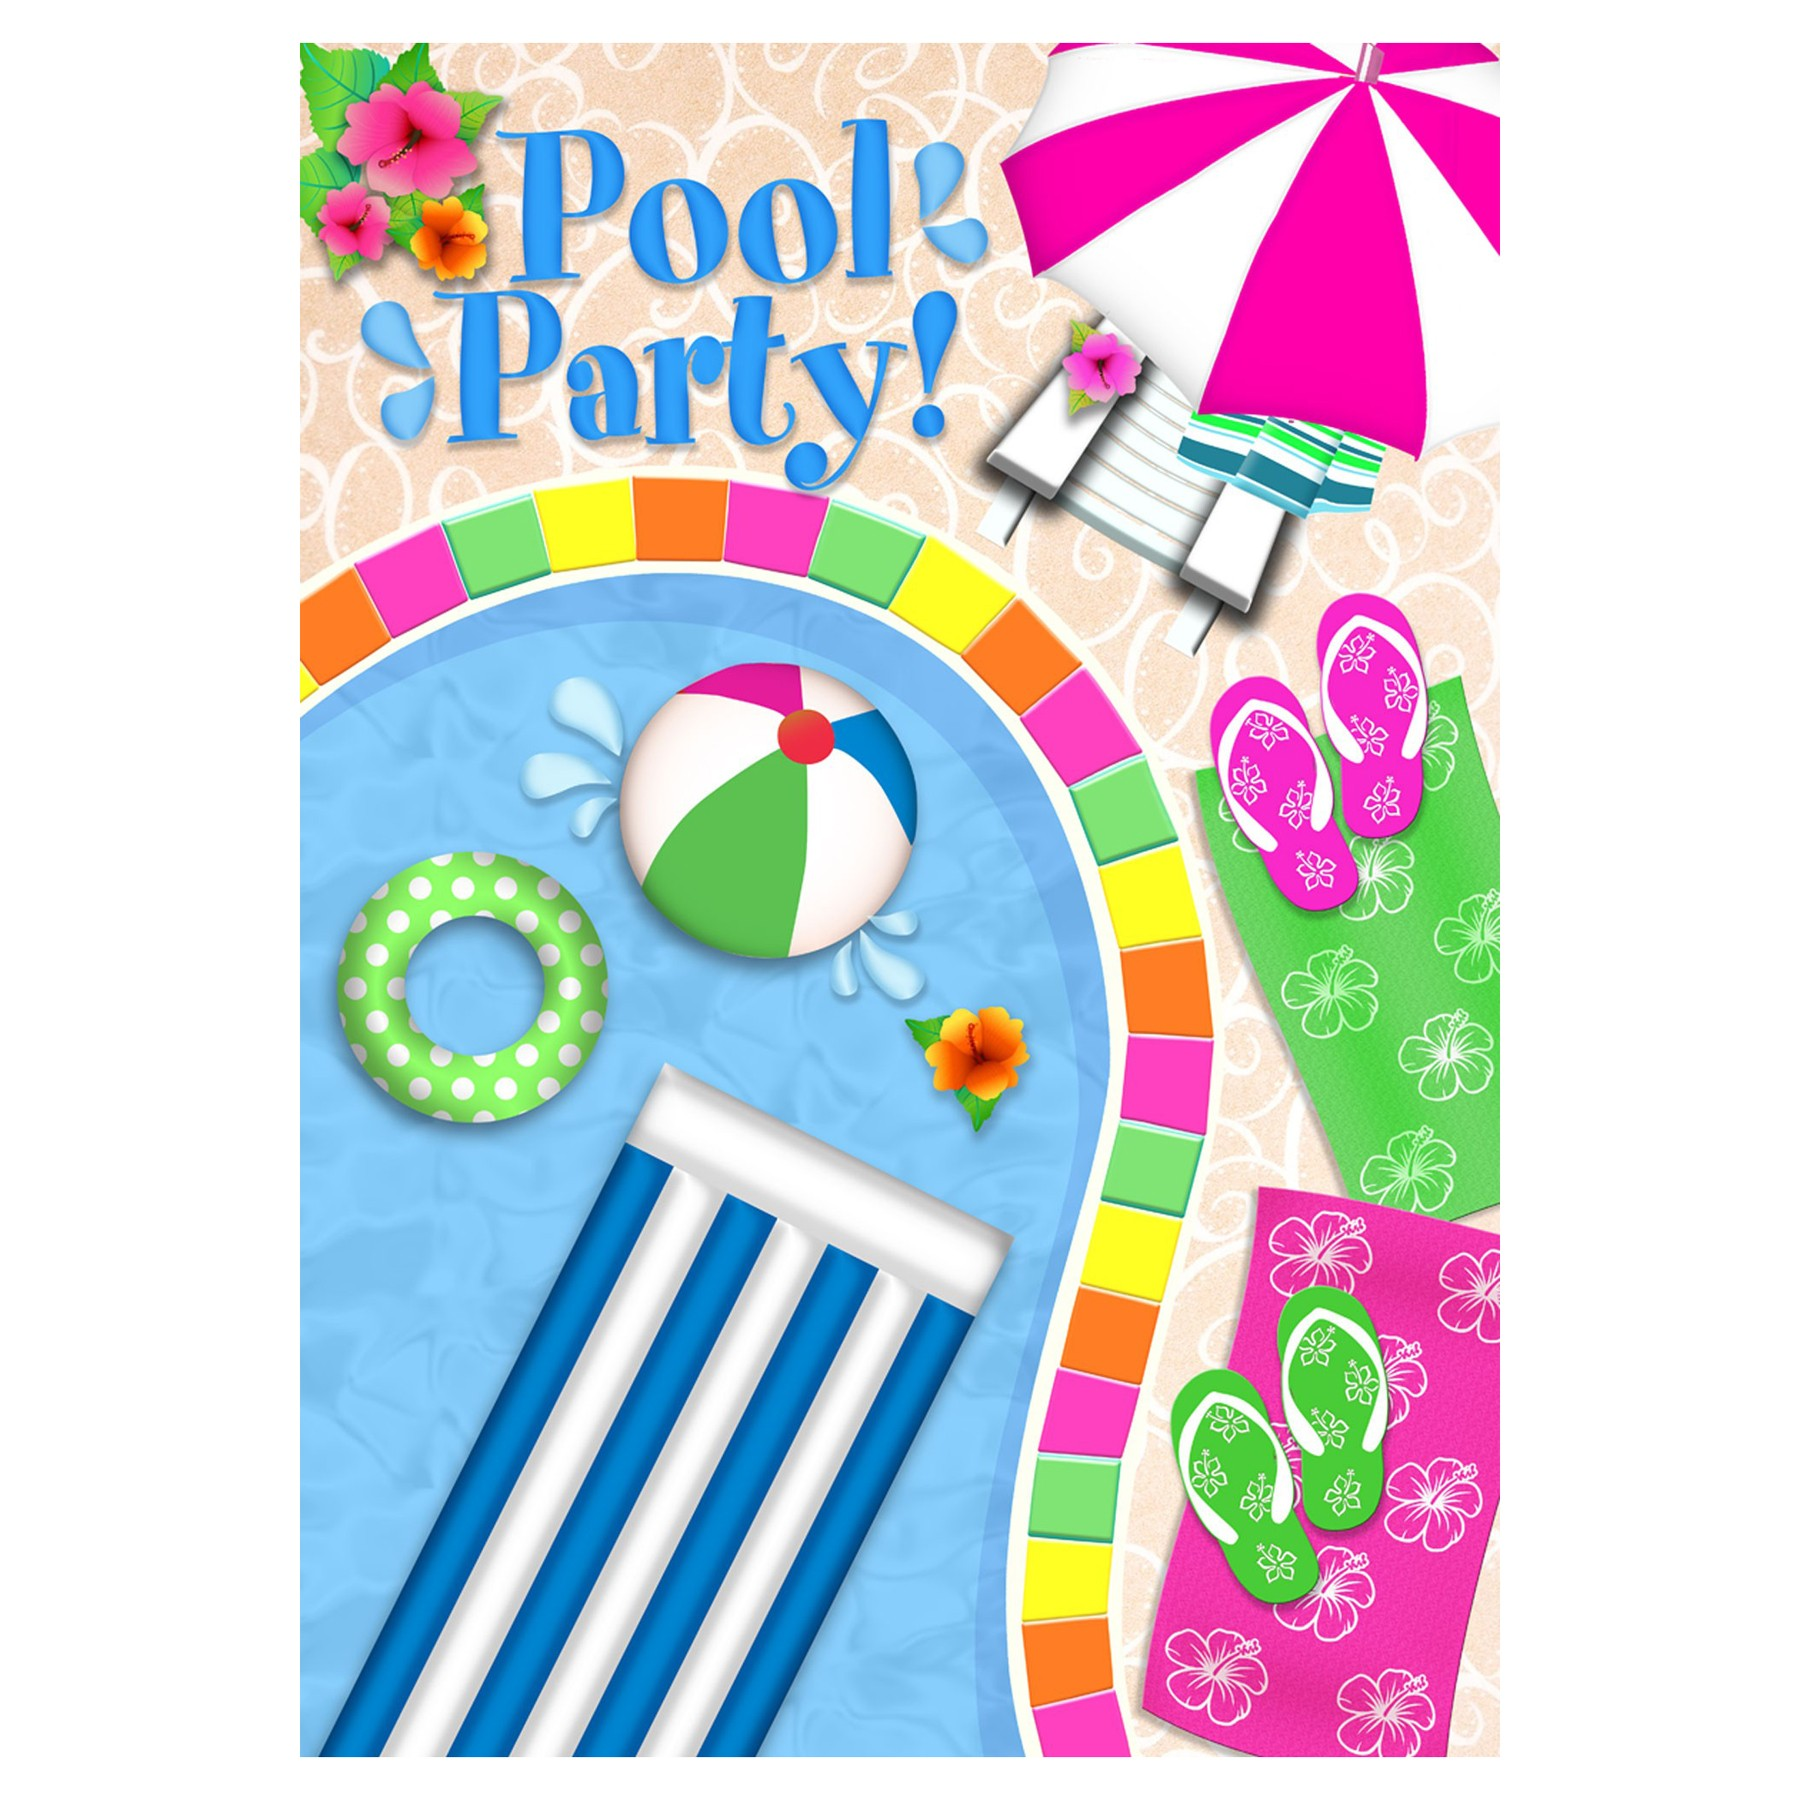 Free Images Of A Pool, Download Free Clip Art, Free Clip Art.